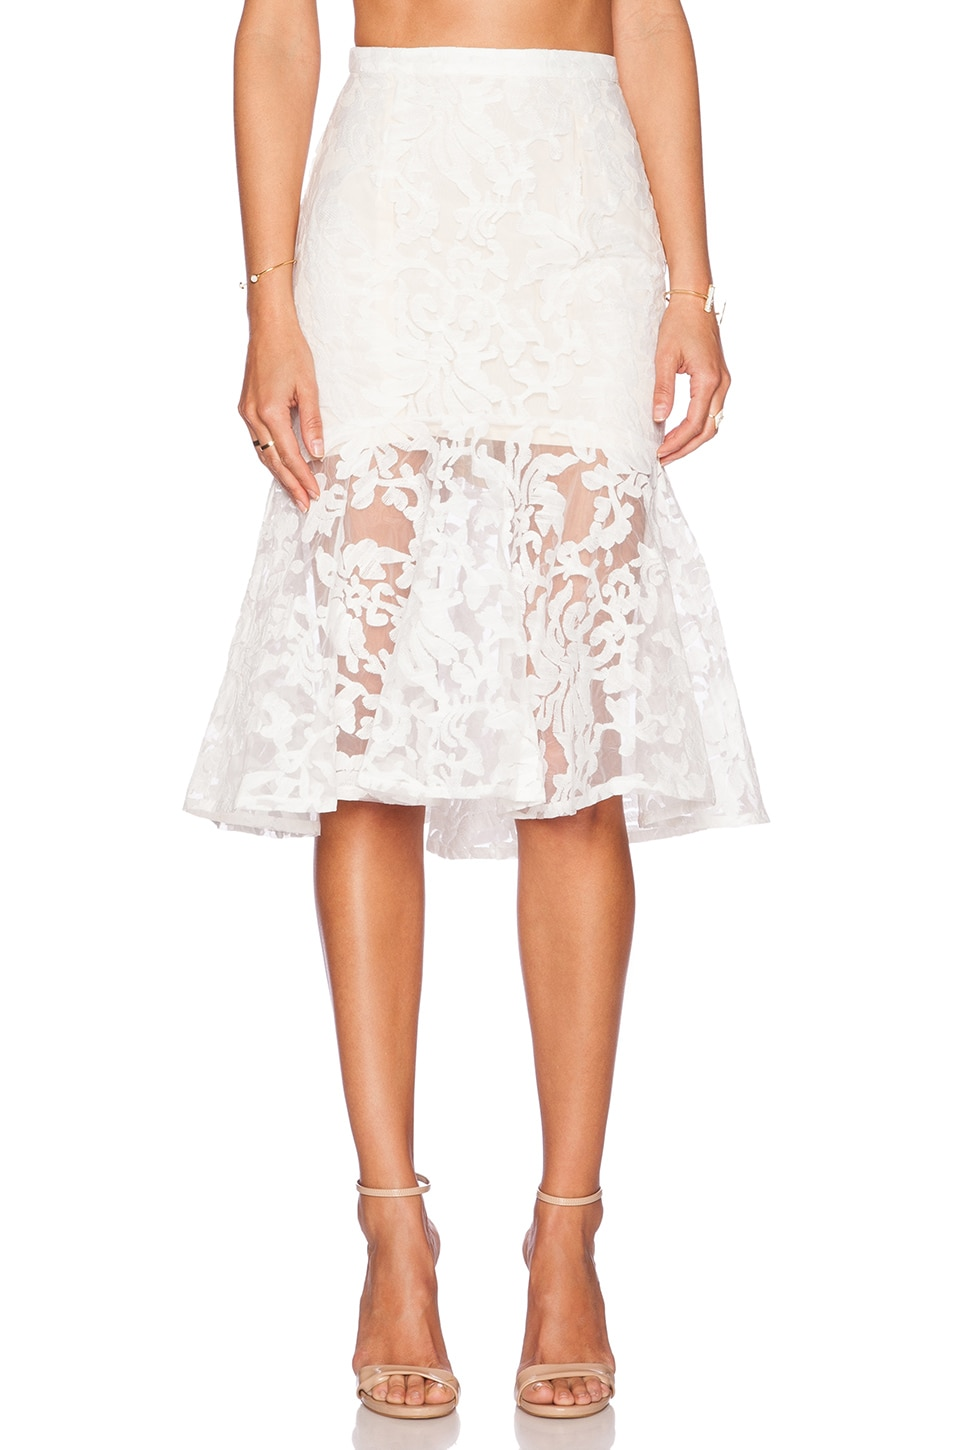 Toby Heart Ginger x Love Indie Ariel Frill Midi Skirt in White & Nude